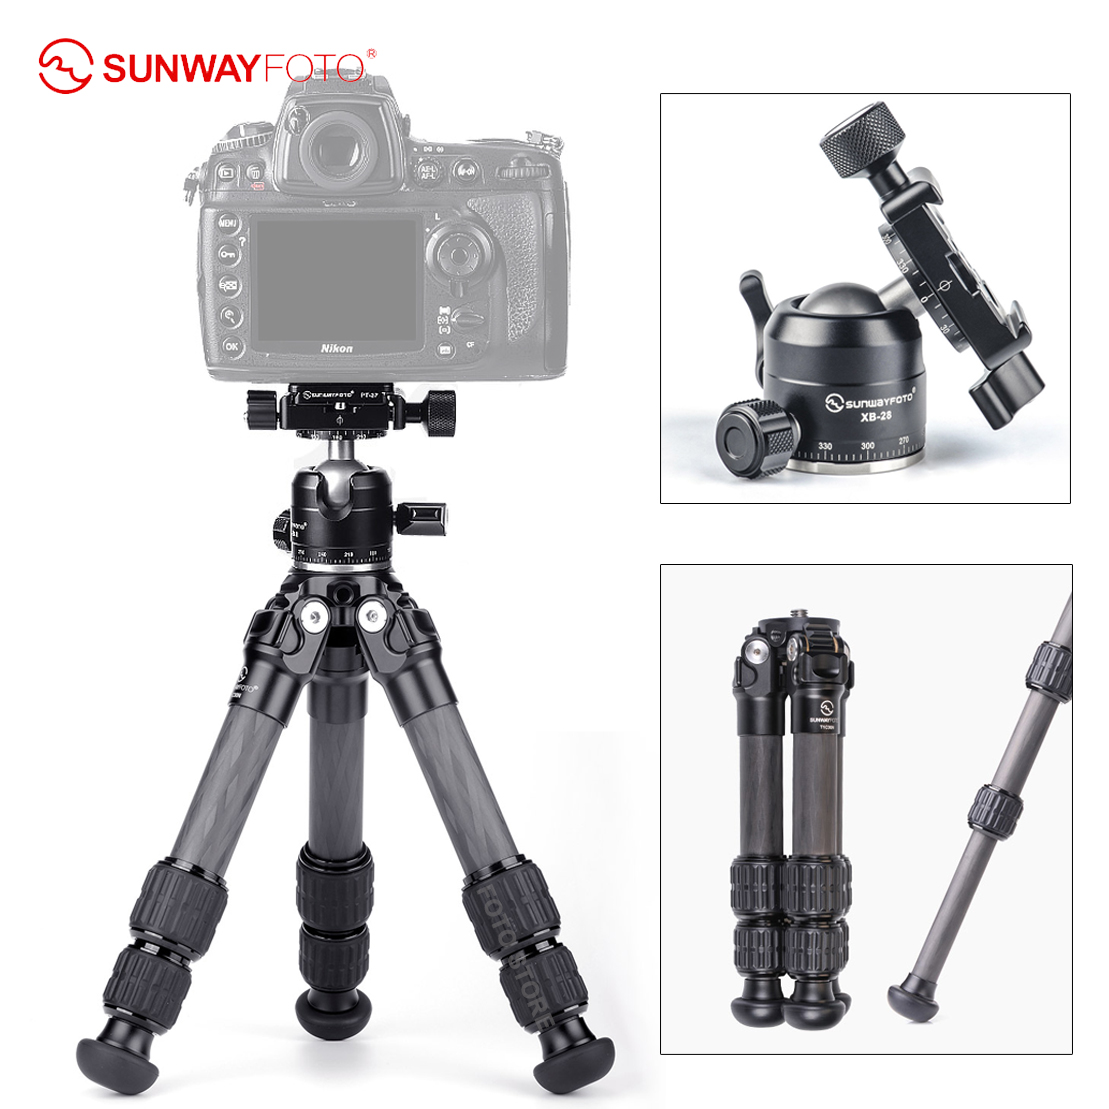 SUNWAYFOTO T1C30N Carbon Fiber Tripod Stand Extensionable Tripod Camera Stand with XB-28 II Quick release Panoramic ball head